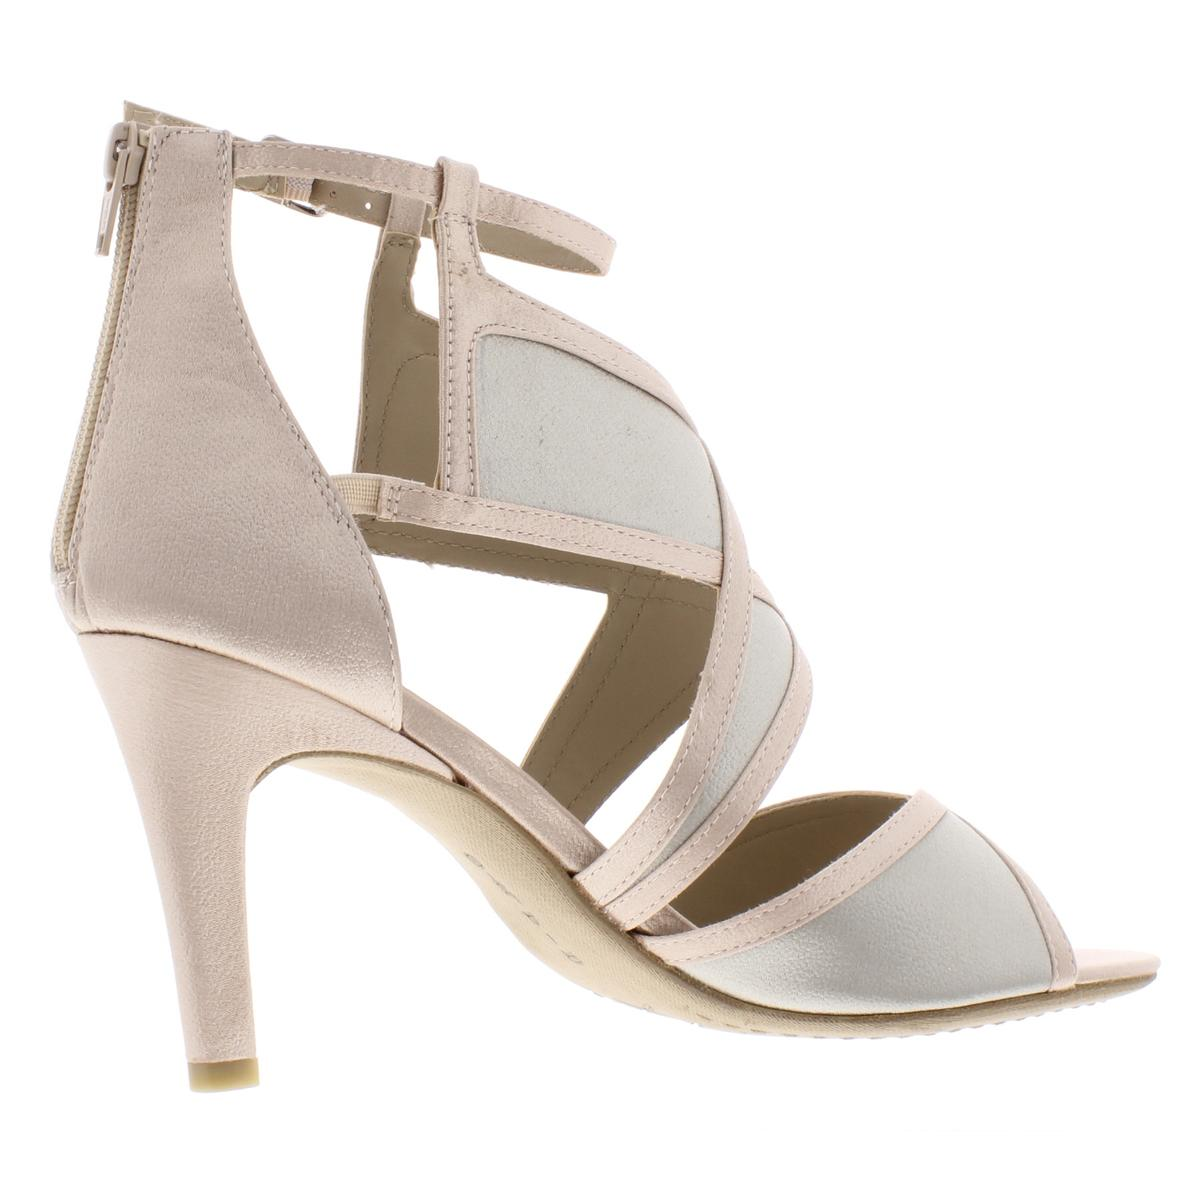 Rialto Womens Ria Faux Suede Strappy Ankle Strap Dress Sandals Heels BHFO 7224